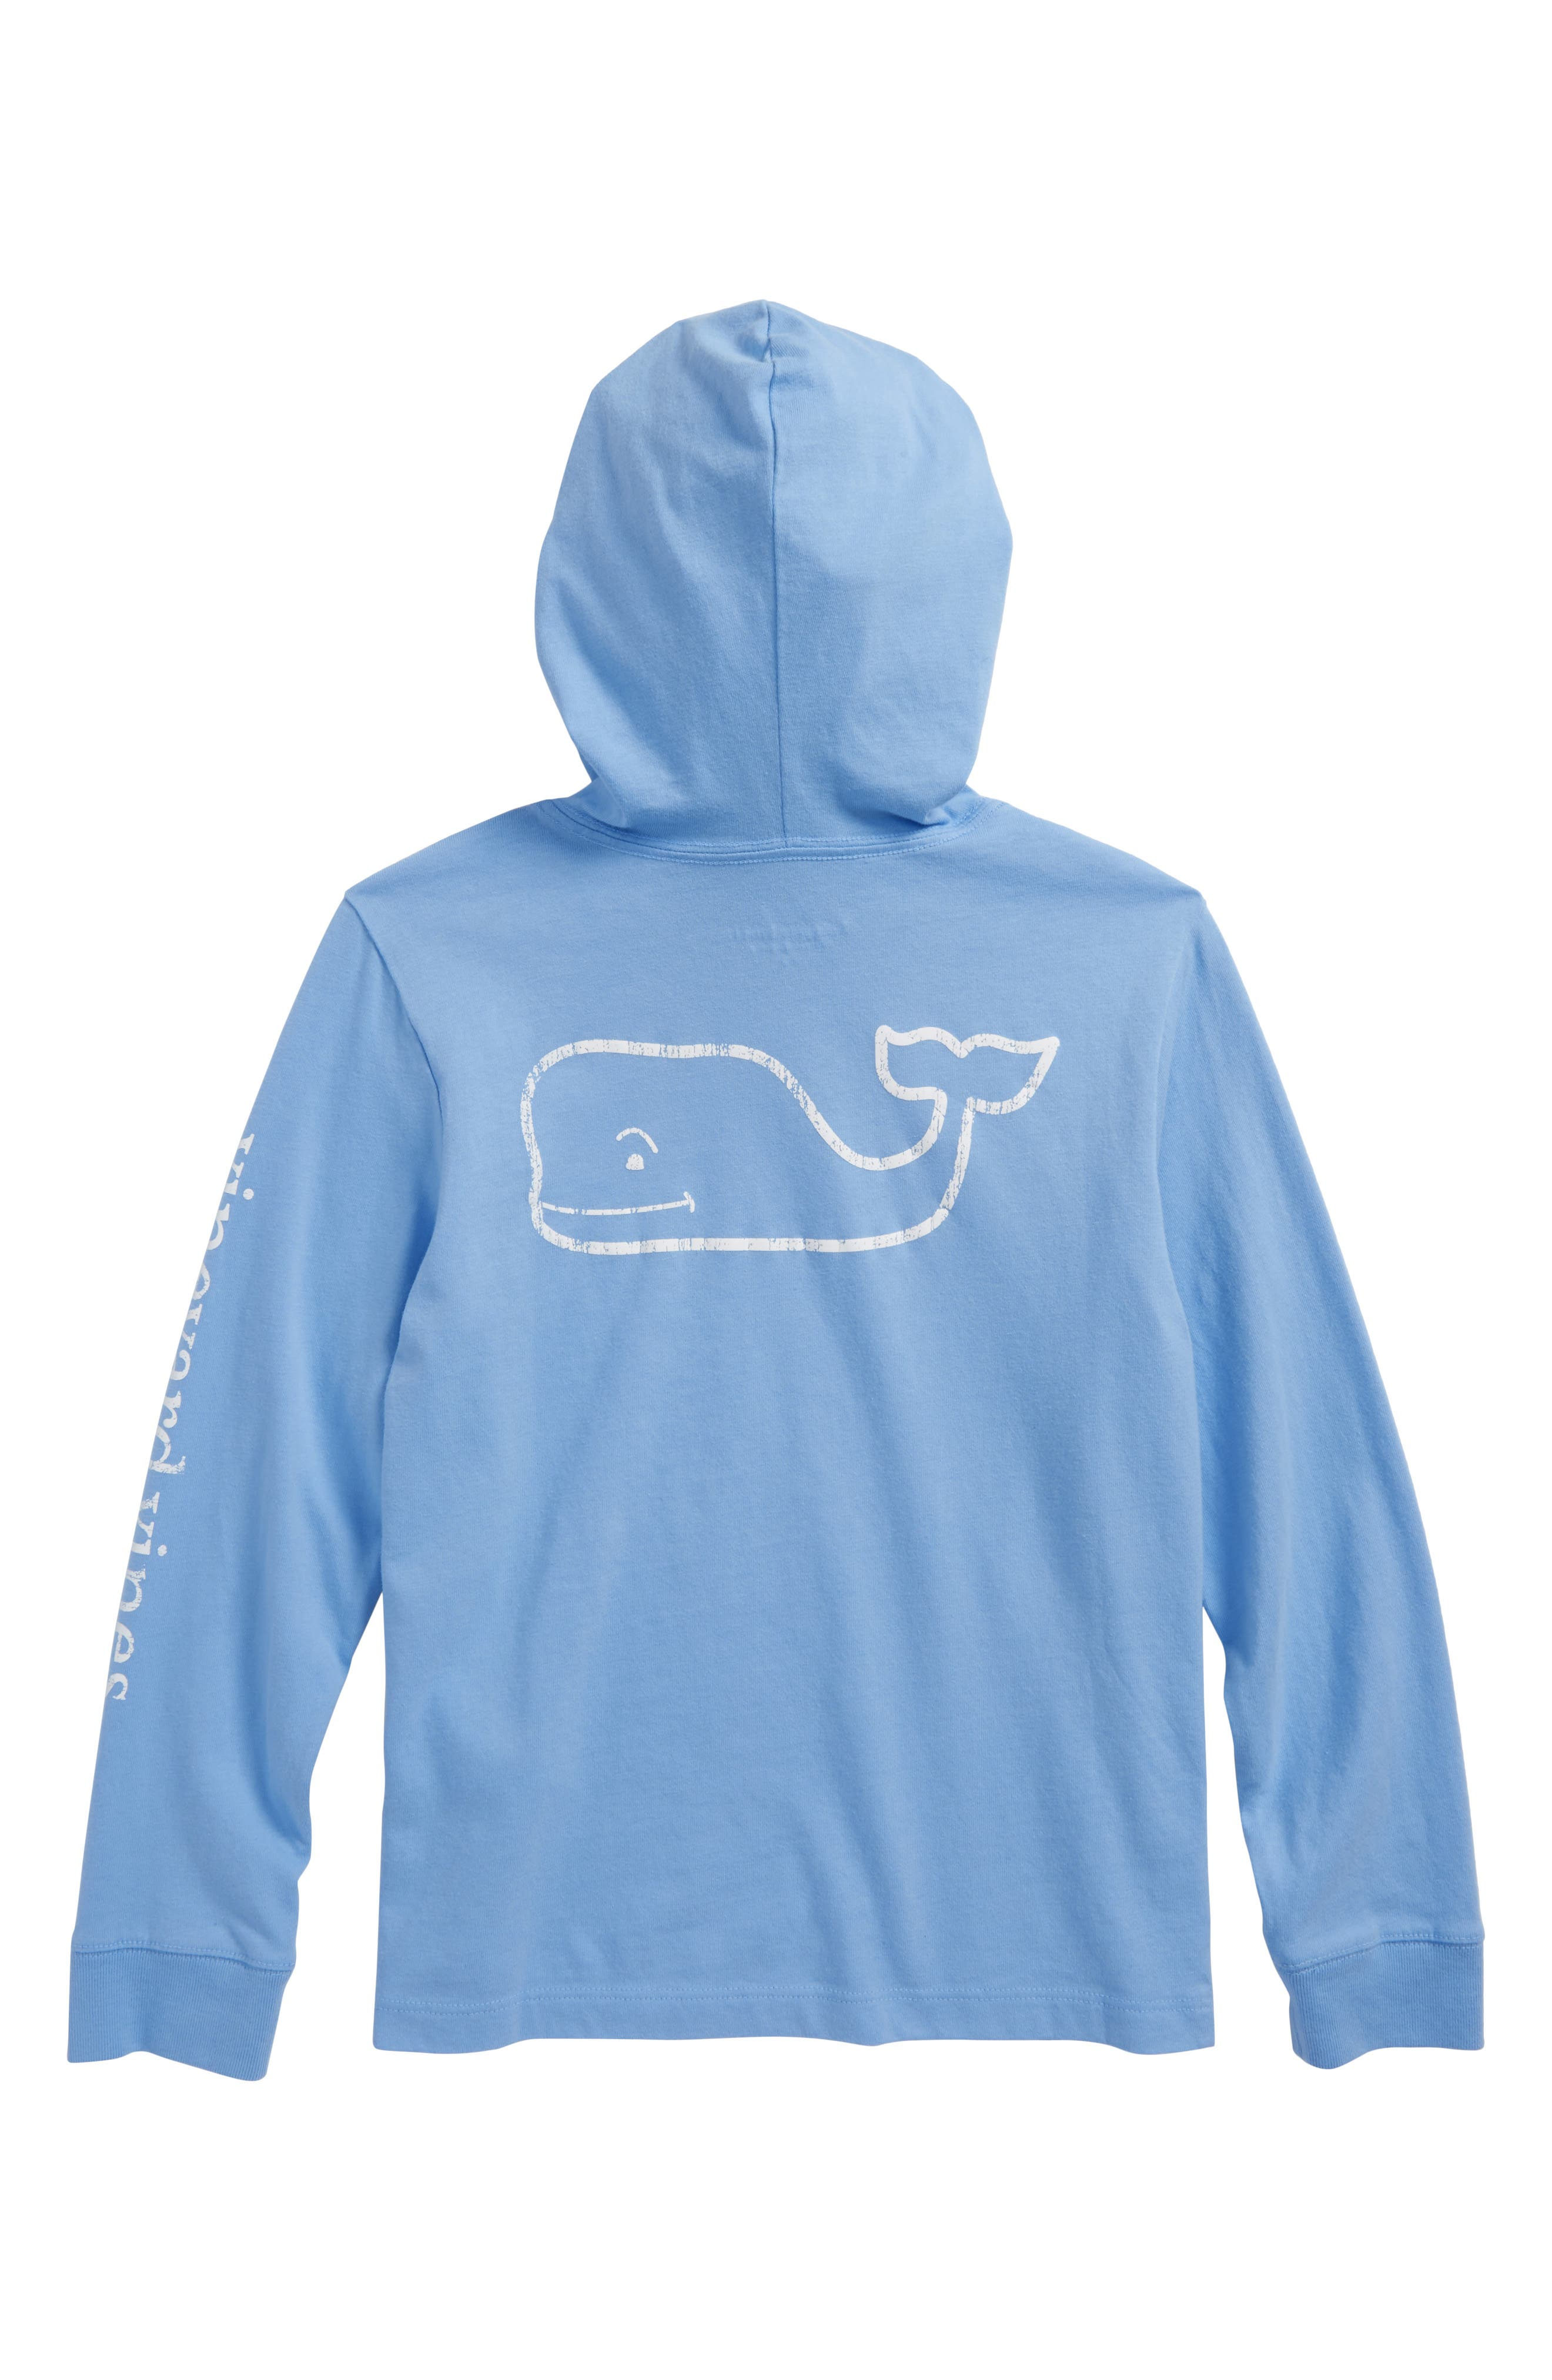 Performance Hooded Pullover,                             Alternate thumbnail 2, color,                             Ocean Breeze